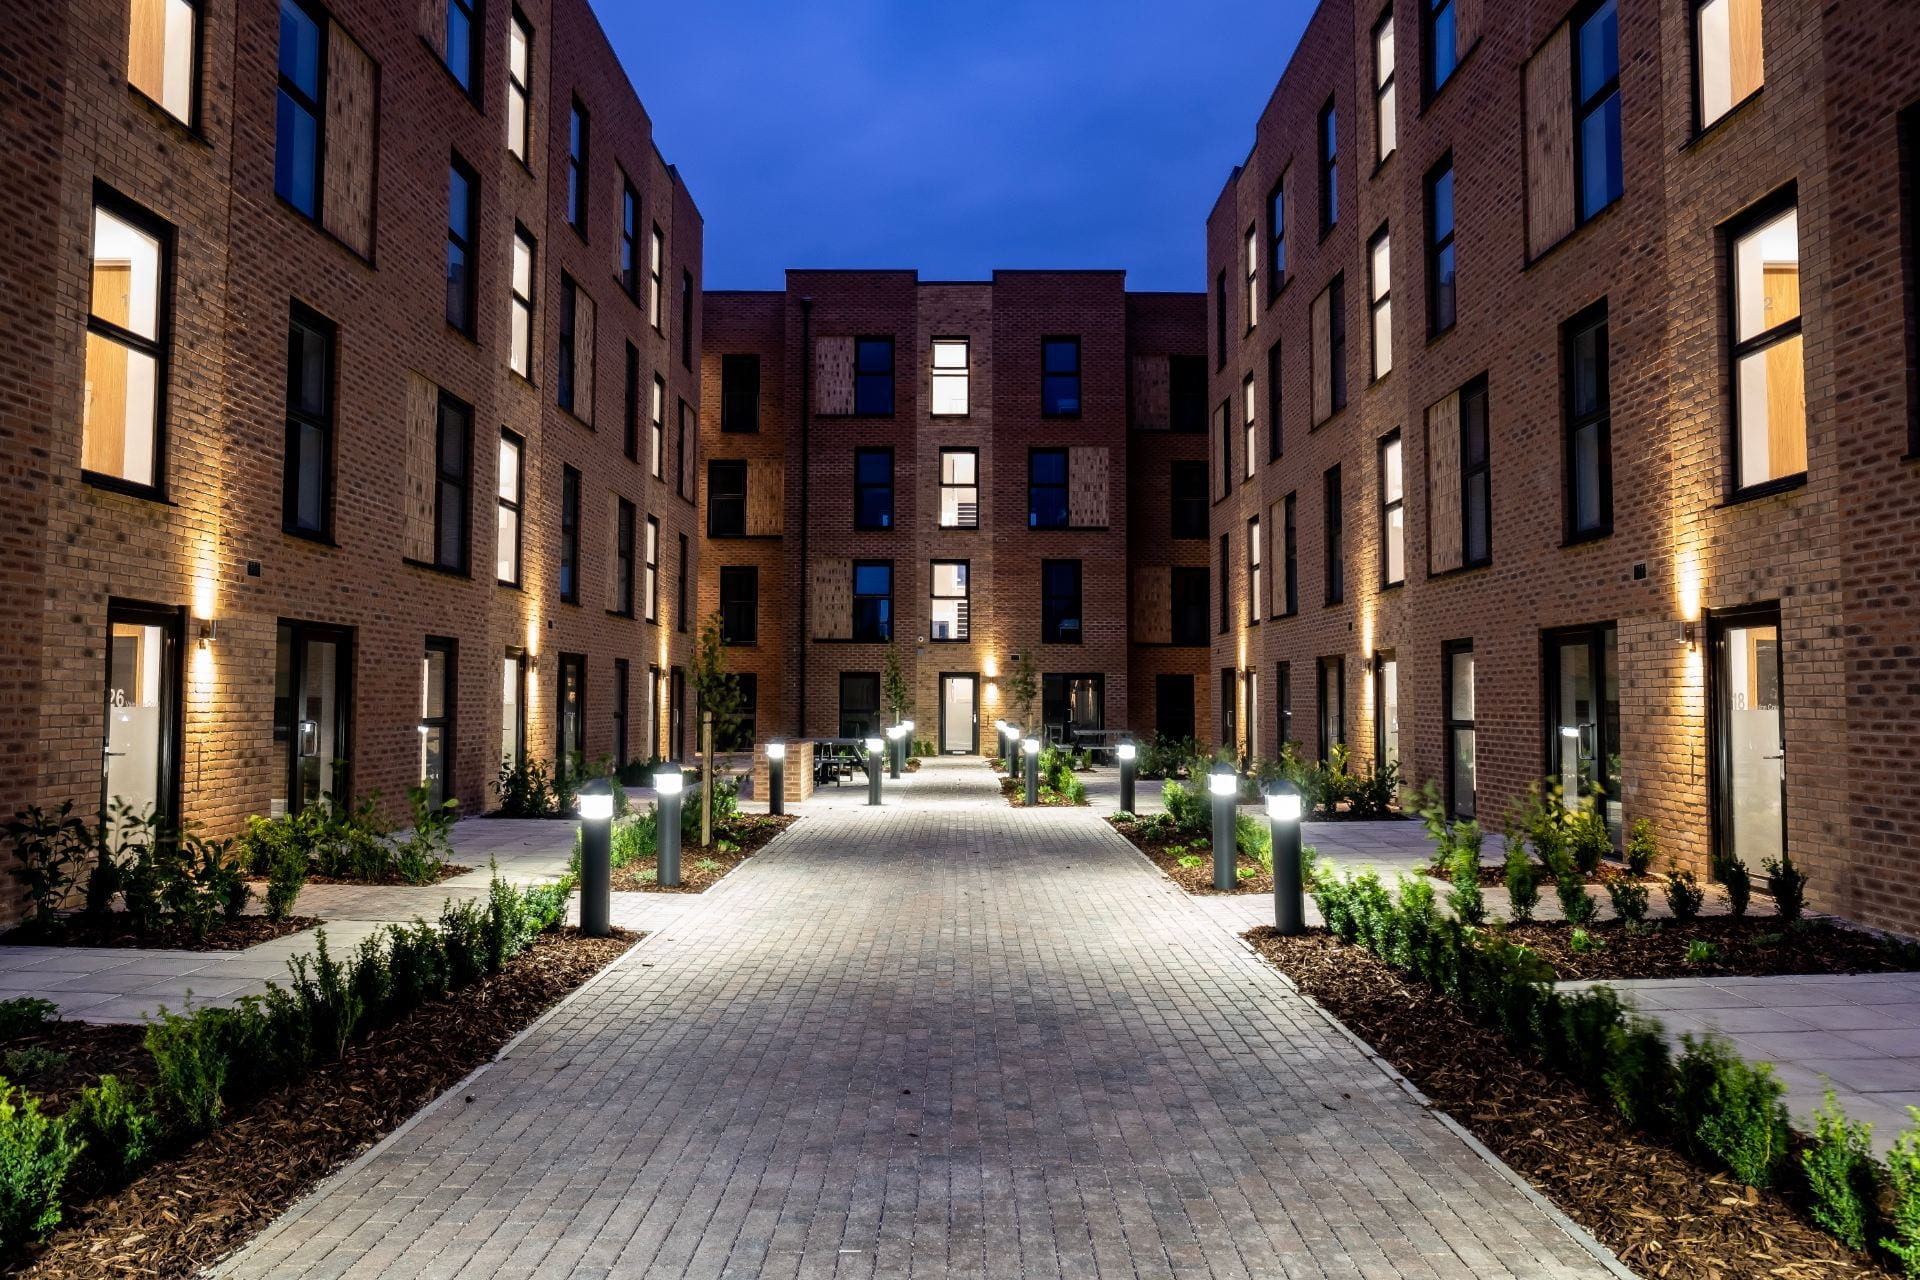 Exterior shot of Valentine Court showing BBQ pit and wooden benches.